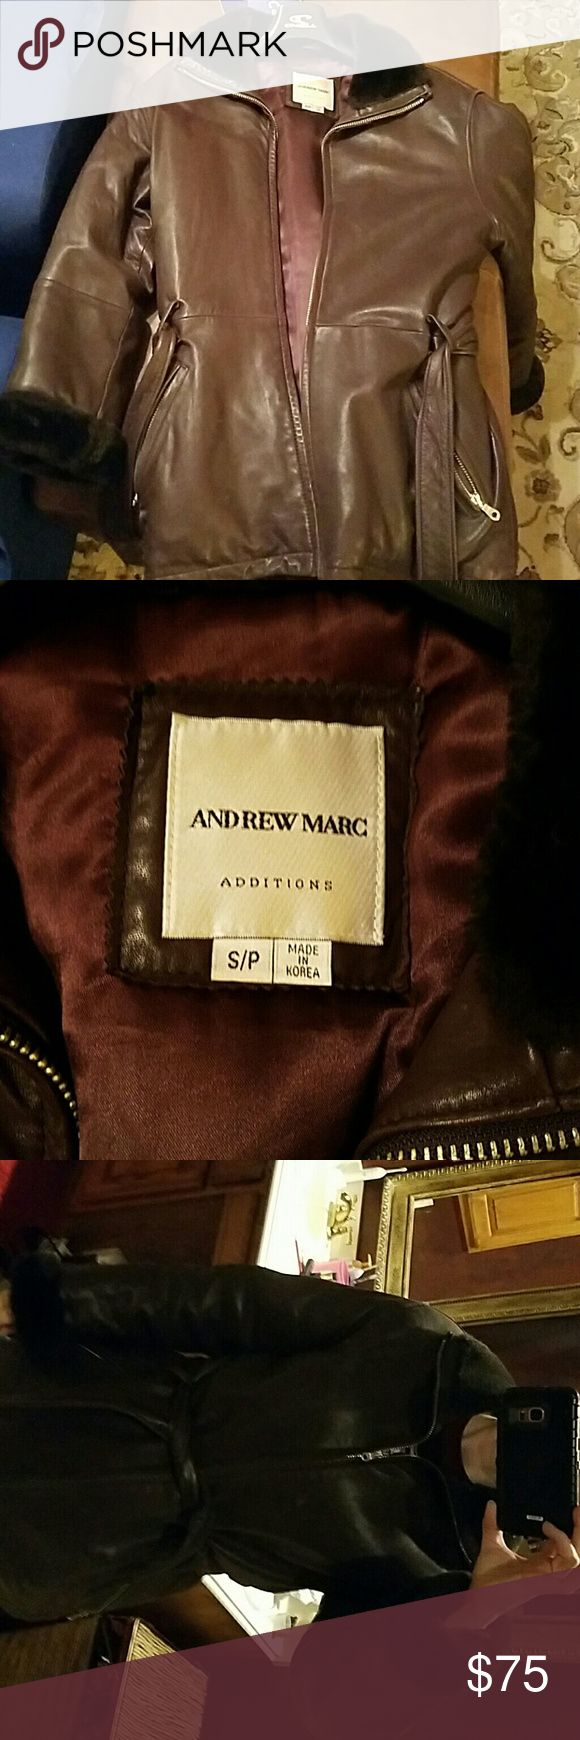 Andrew Marc brown leather jacket Excellent Andrew Marc brown leather jacket I see no flaws I have included a picture of the only real flaw I see on the bottom of the jacket there appears to be a slight snag on the interior of the sudden but I never noticed it until inspecting the jacket. Make an offer Andrew Marc Jackets & Coats Puffers